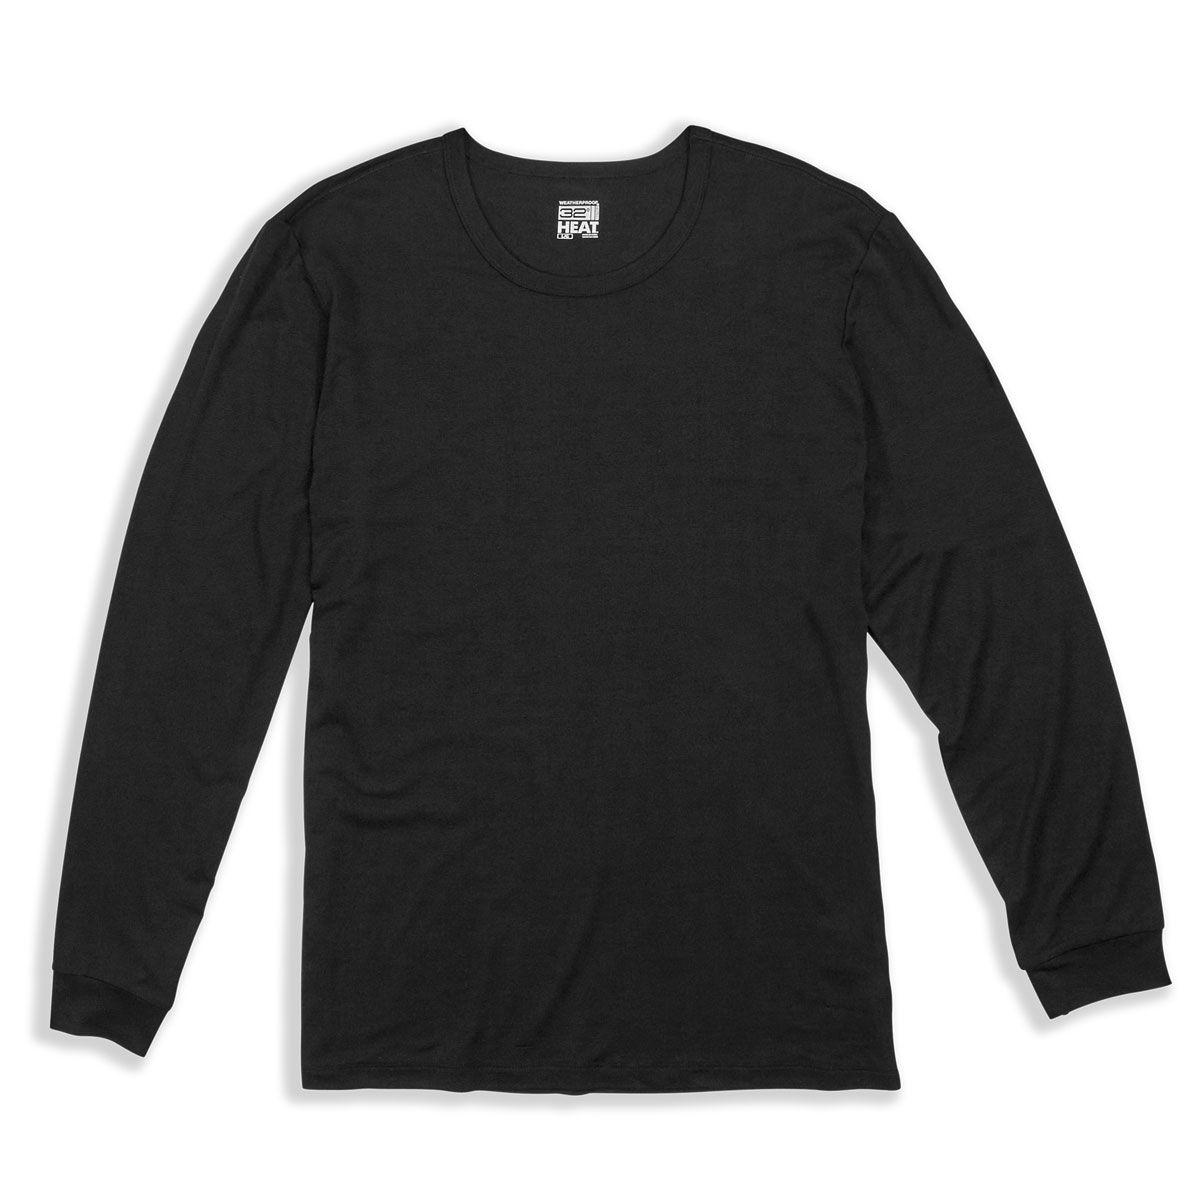 32 Degrees Mens Heat Plus Thermal Long Sleeve Crew